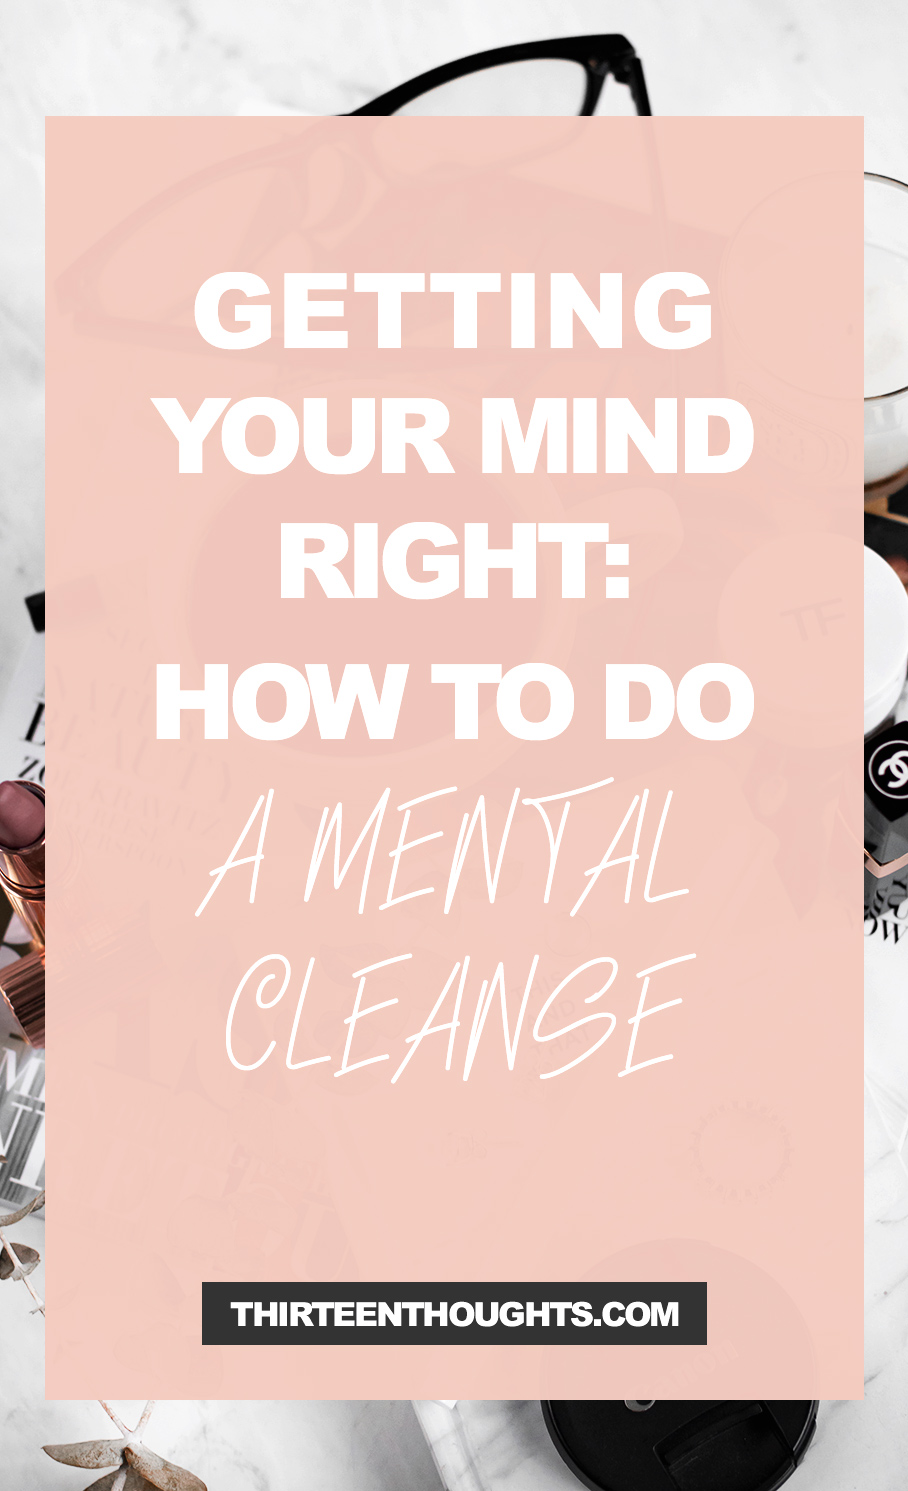 Getting Your Mind Right: How To Do a Mental Cleanse